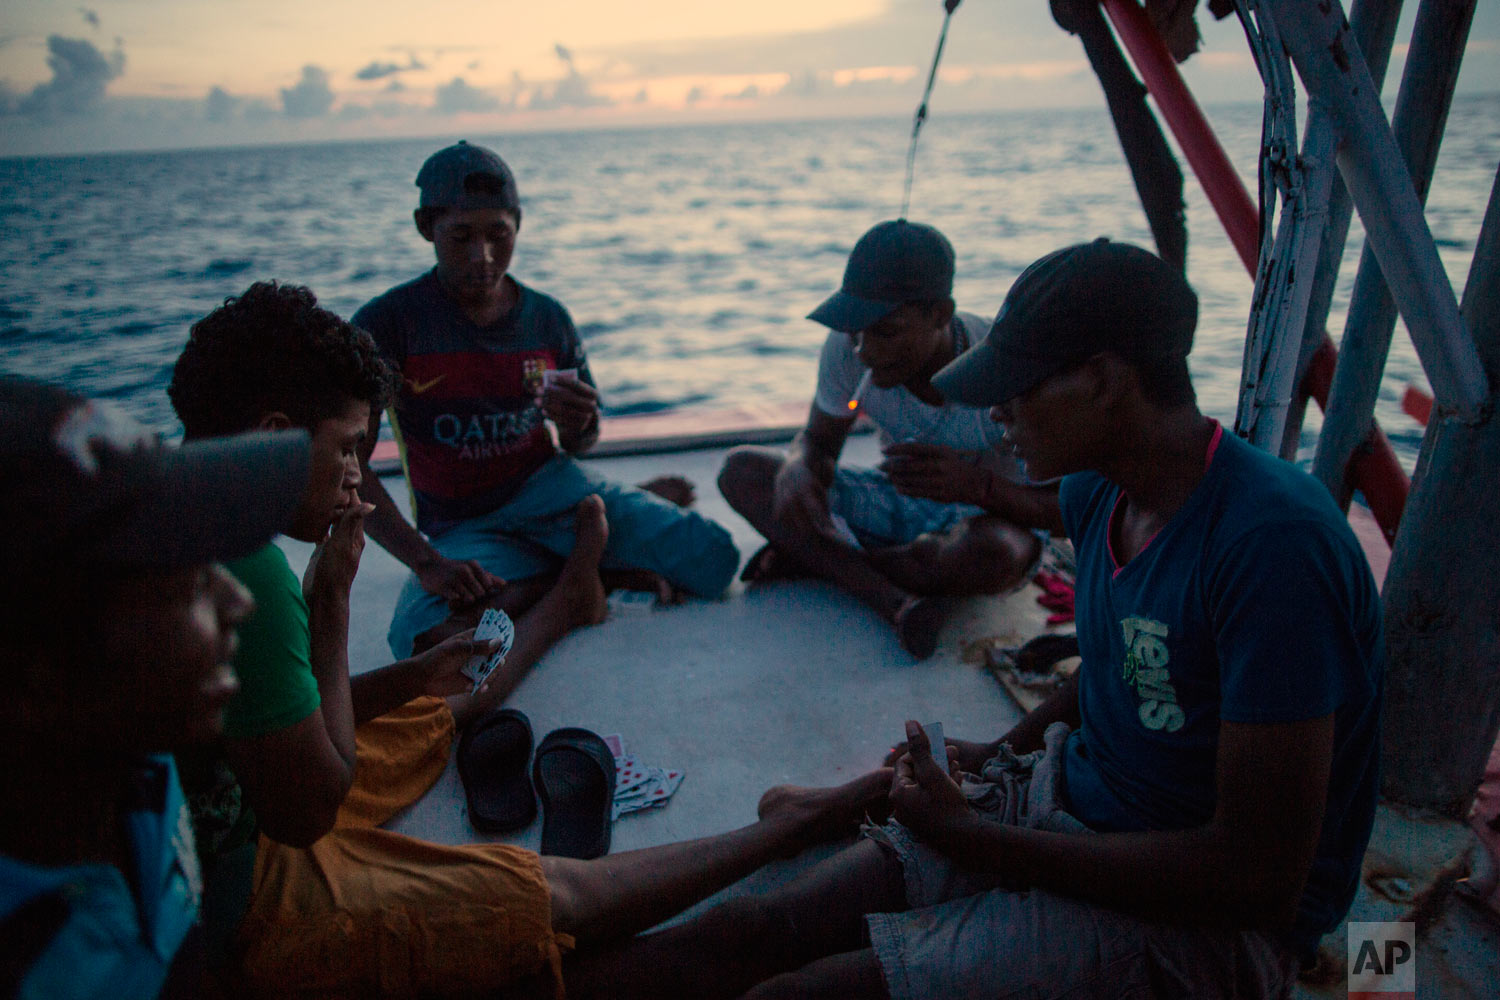 In this Sept. 10, 2018 photo, Miskito divers play a game of cards on a ship's stern as they are transported home after a two week fishing trip, near the Savannah Cay, Honduras. (AP Photo/Rodrigo Abd)